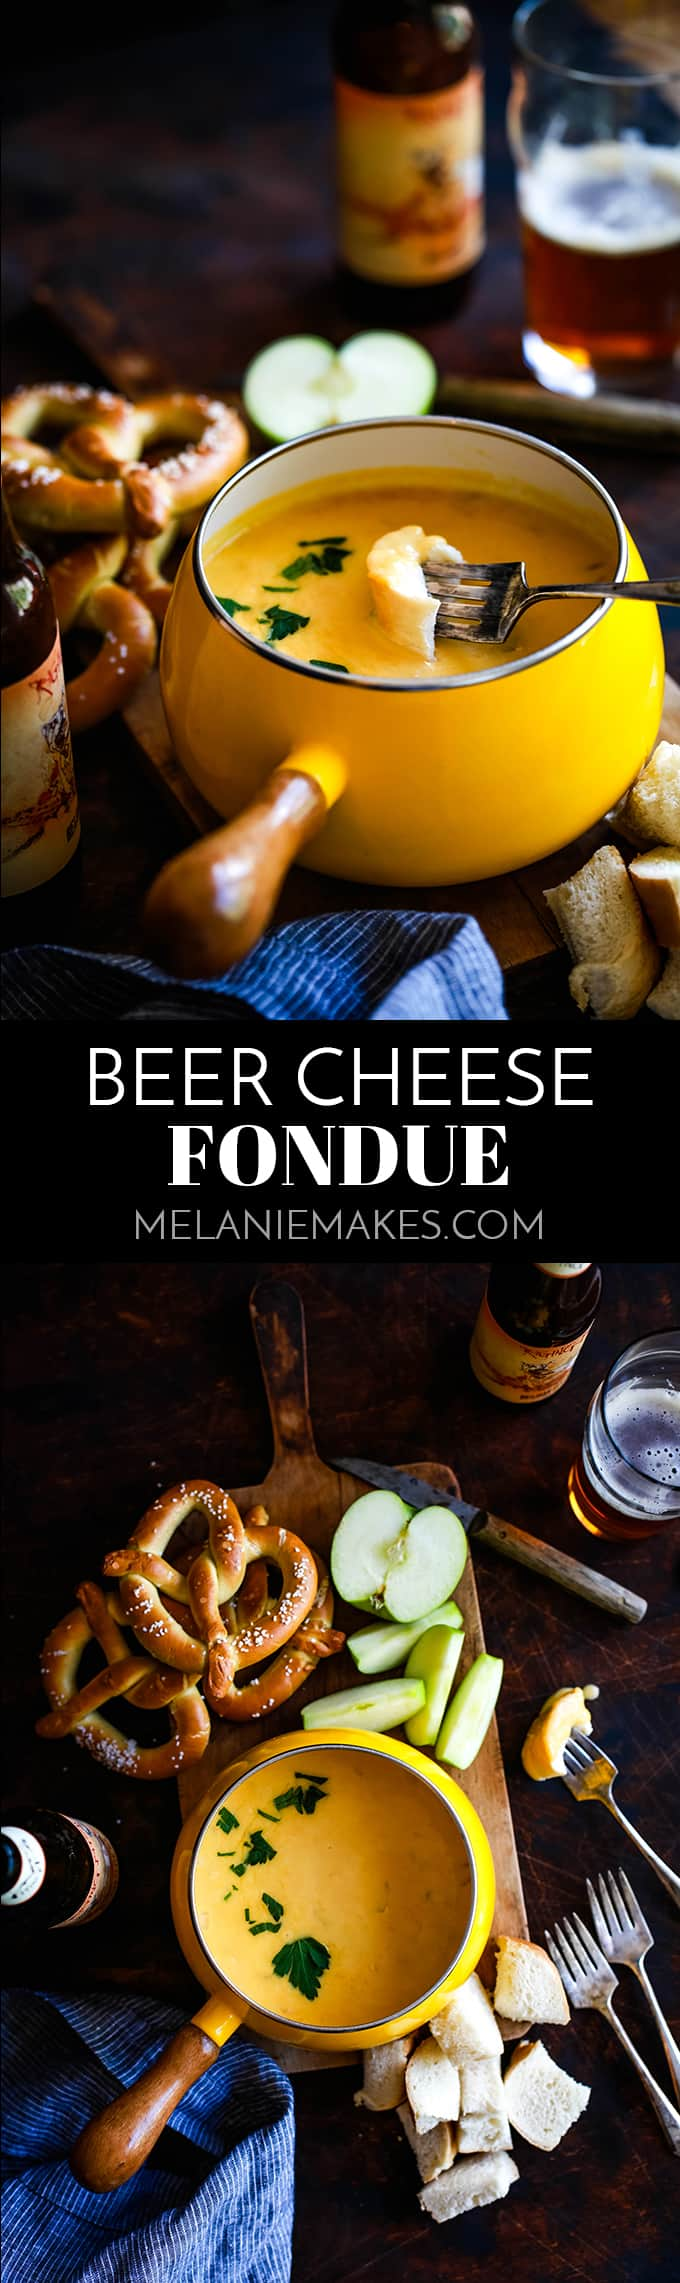 This Beer Cheese Fondue makes for a perfect game day appetizer. Yourfavorite beer, cheddar cheese and onion become aperfect, melty dipping sauce. #fondue #cheese #appetizers #partyfood #party #dips #beer